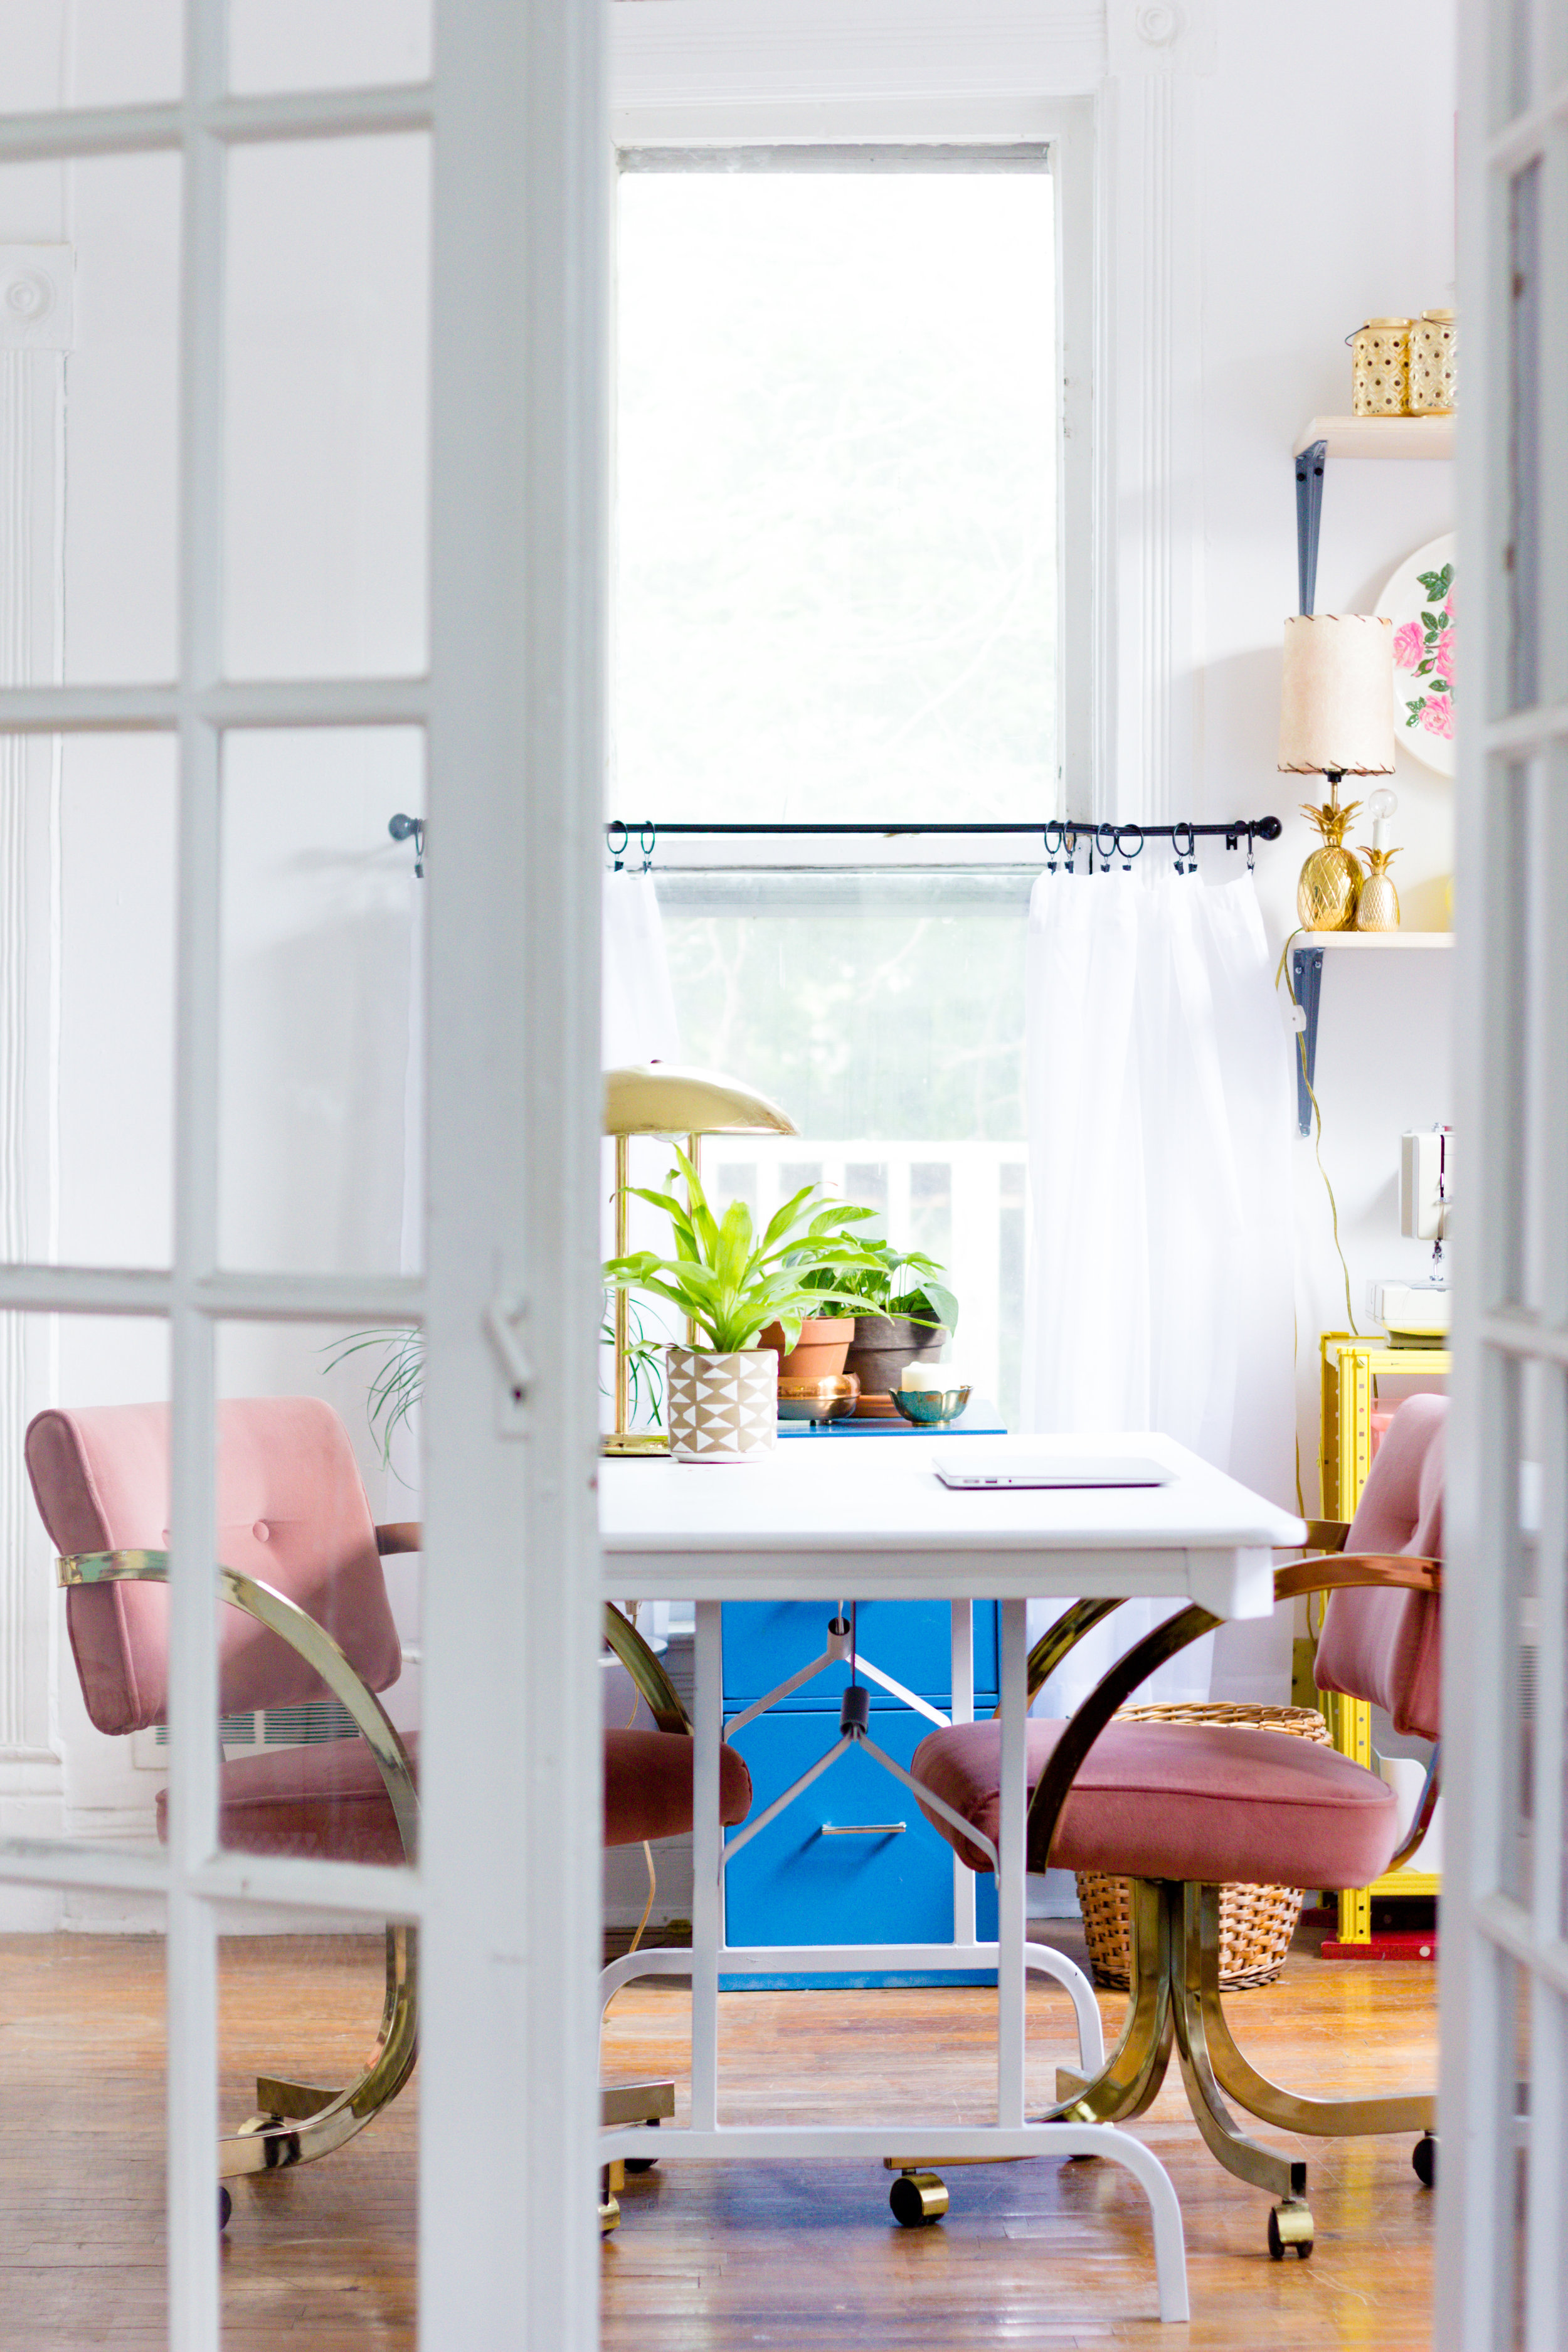 Home Office with Pink and Brass Office Chairs and French Doors